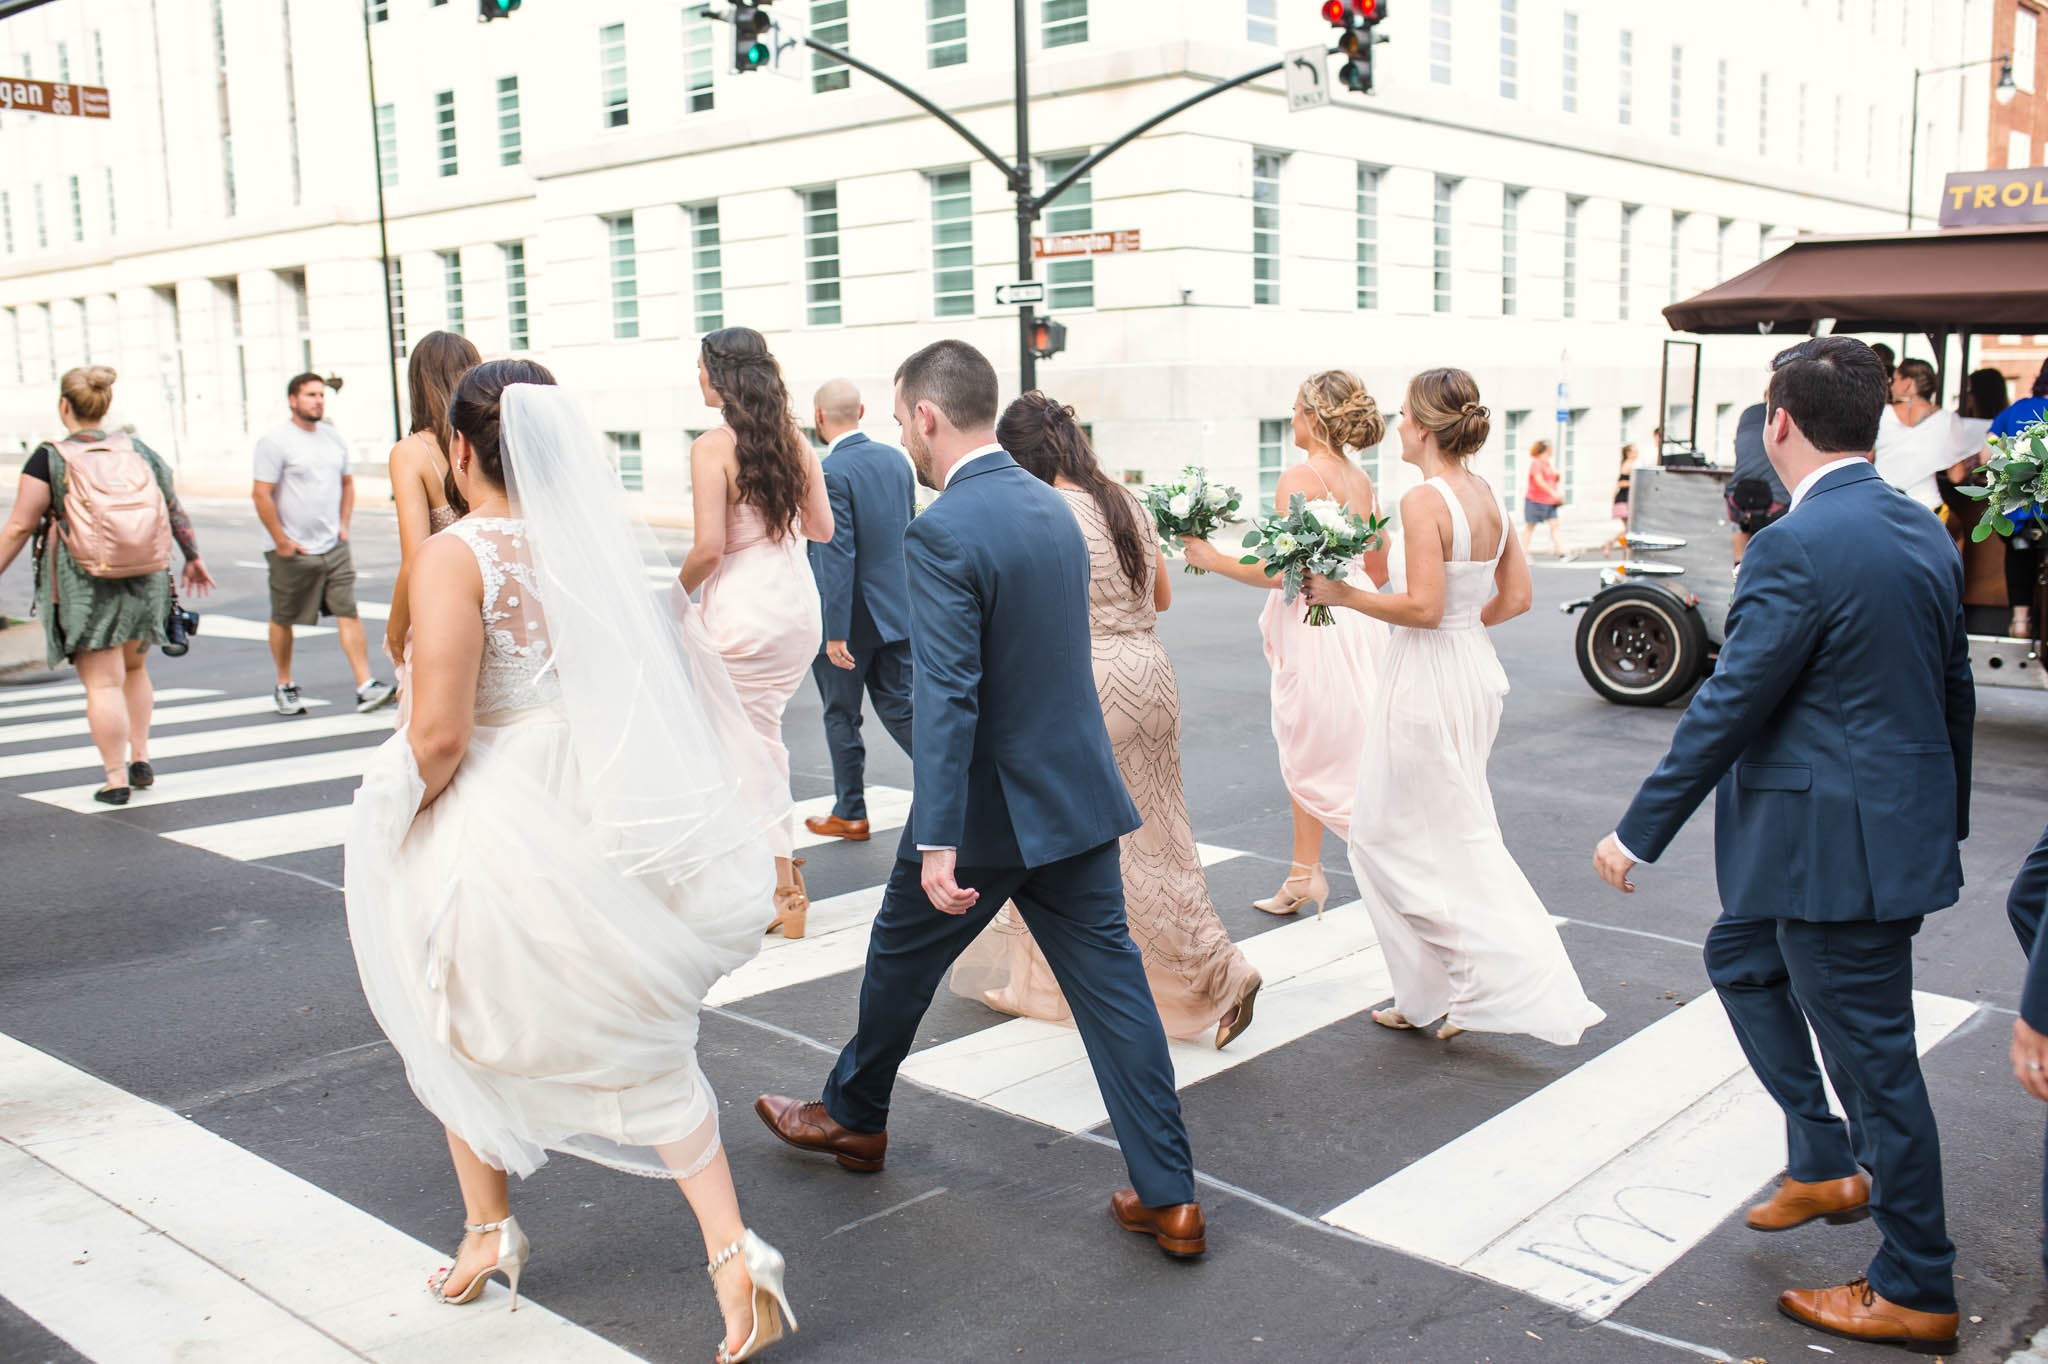 The wedding party downtown raleigh - Clare + Wallace - The Jiddy Space - Raleigh North Carolina Wedding Photographer